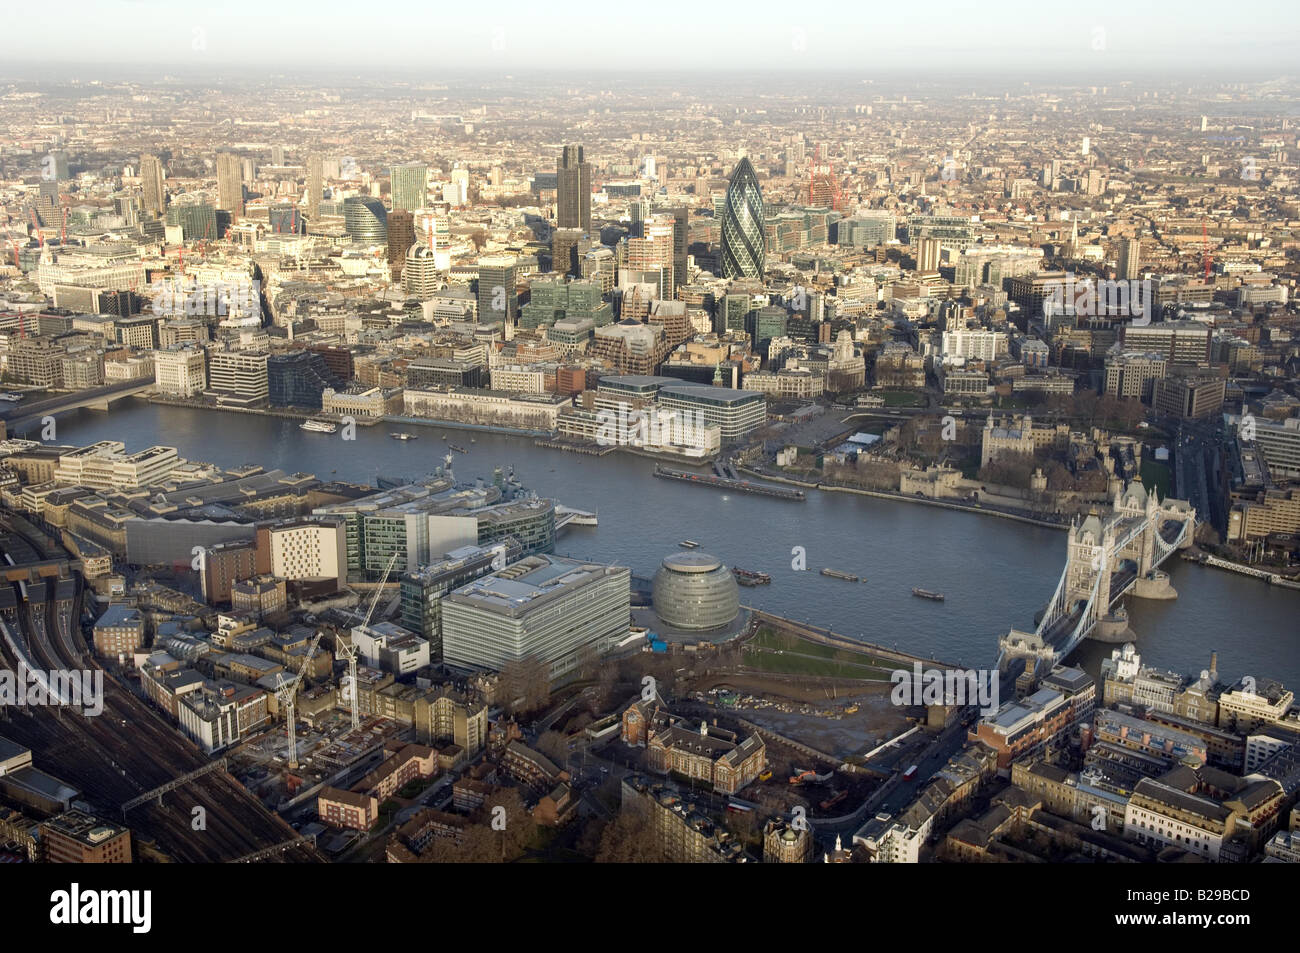 The City of London Date 12 03 2008 Ref ZB648 111149 0053 COMPULSORY CREDIT World Pictures Photoshot - Stock Image